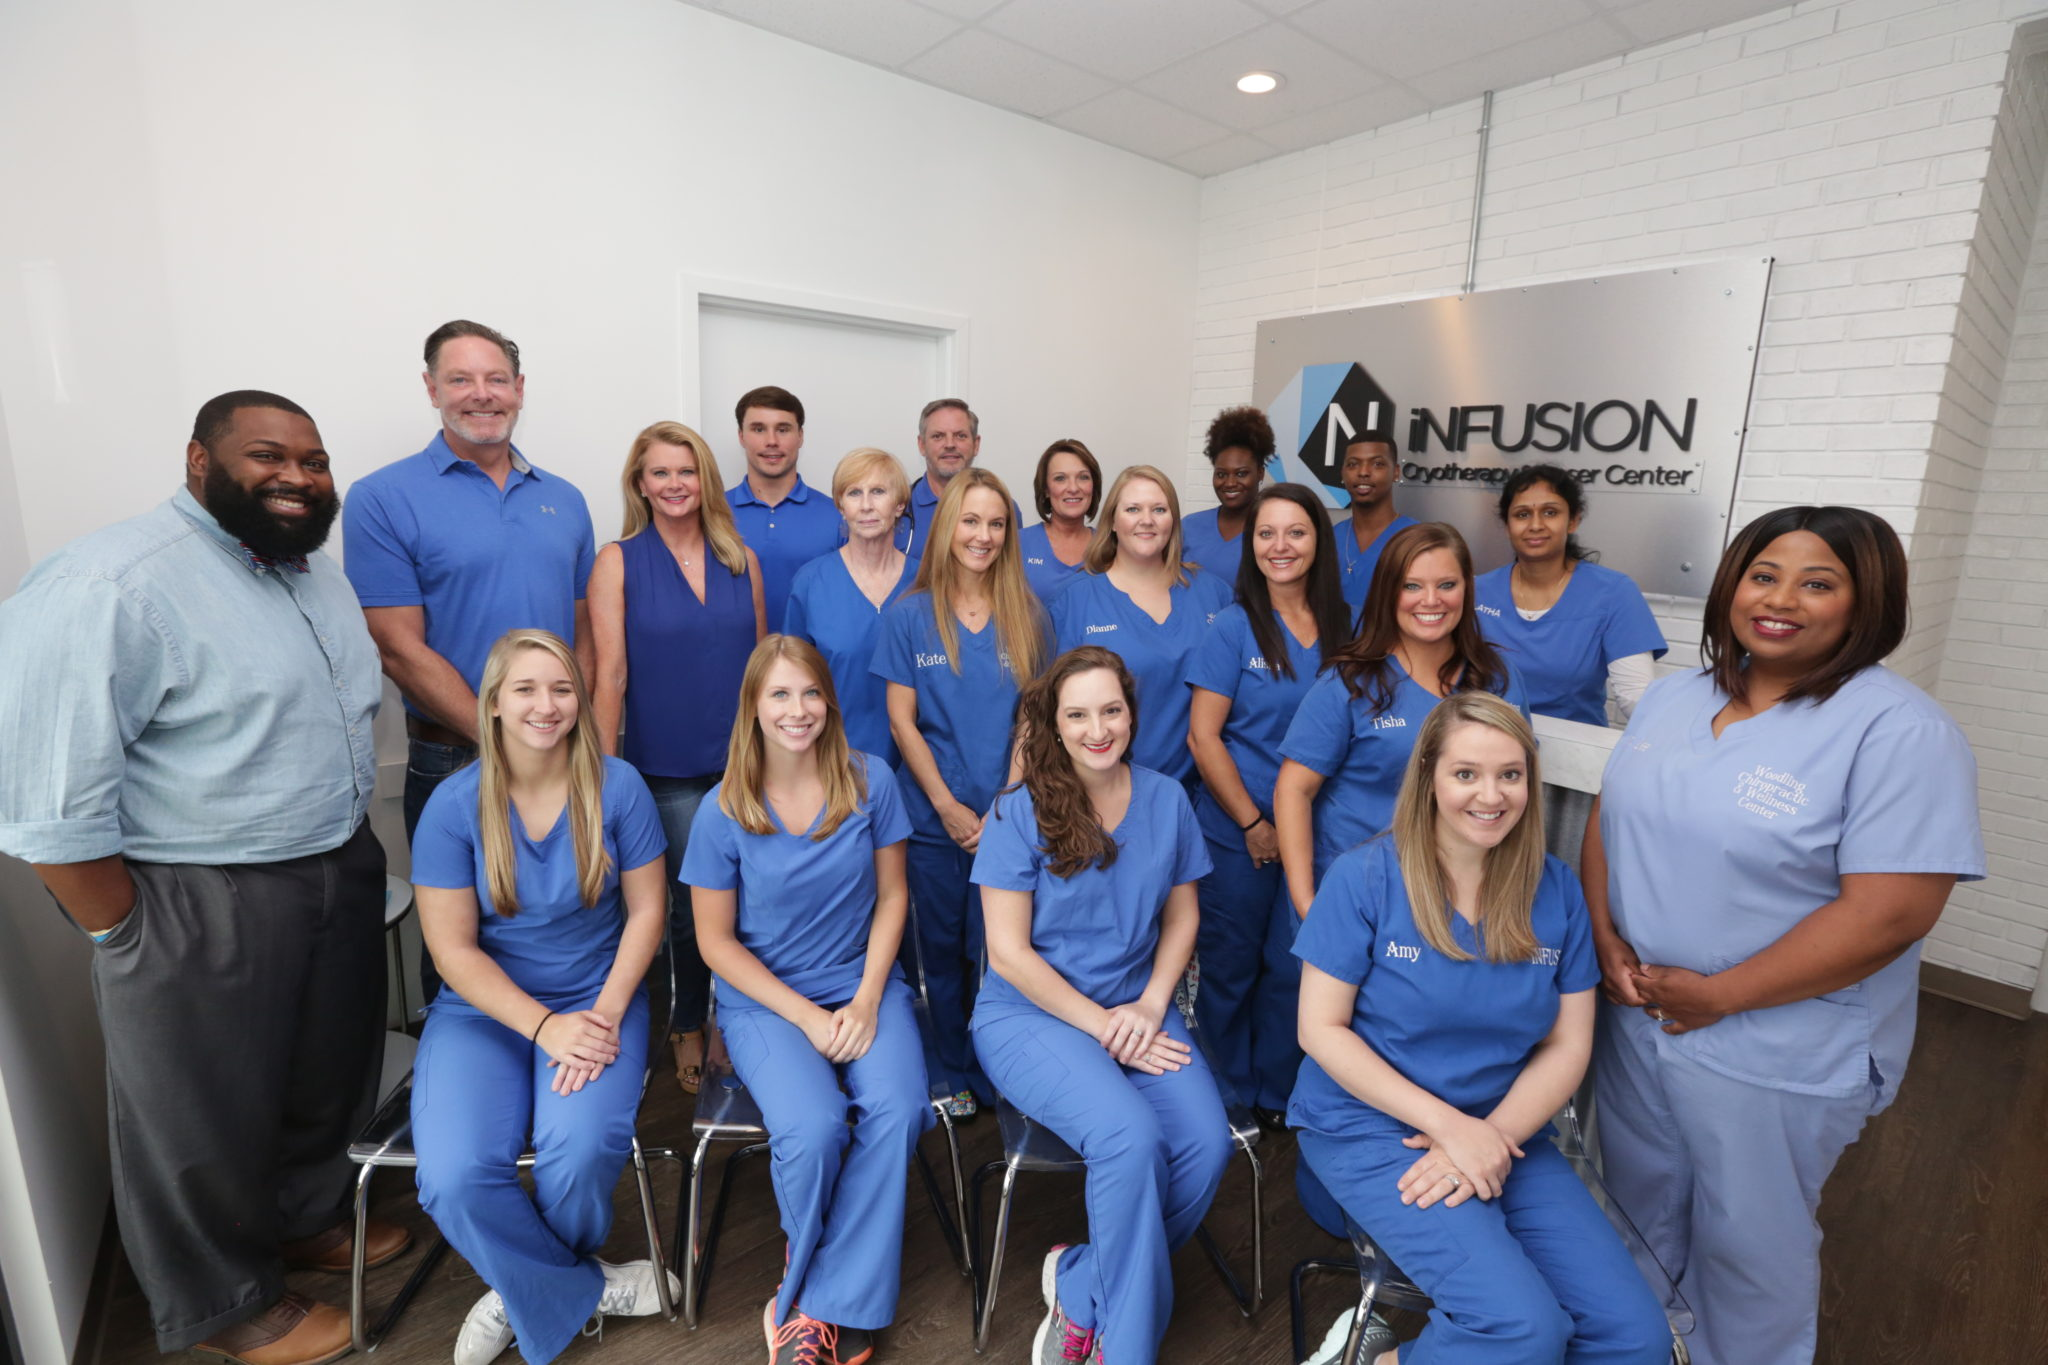 Infusion Team